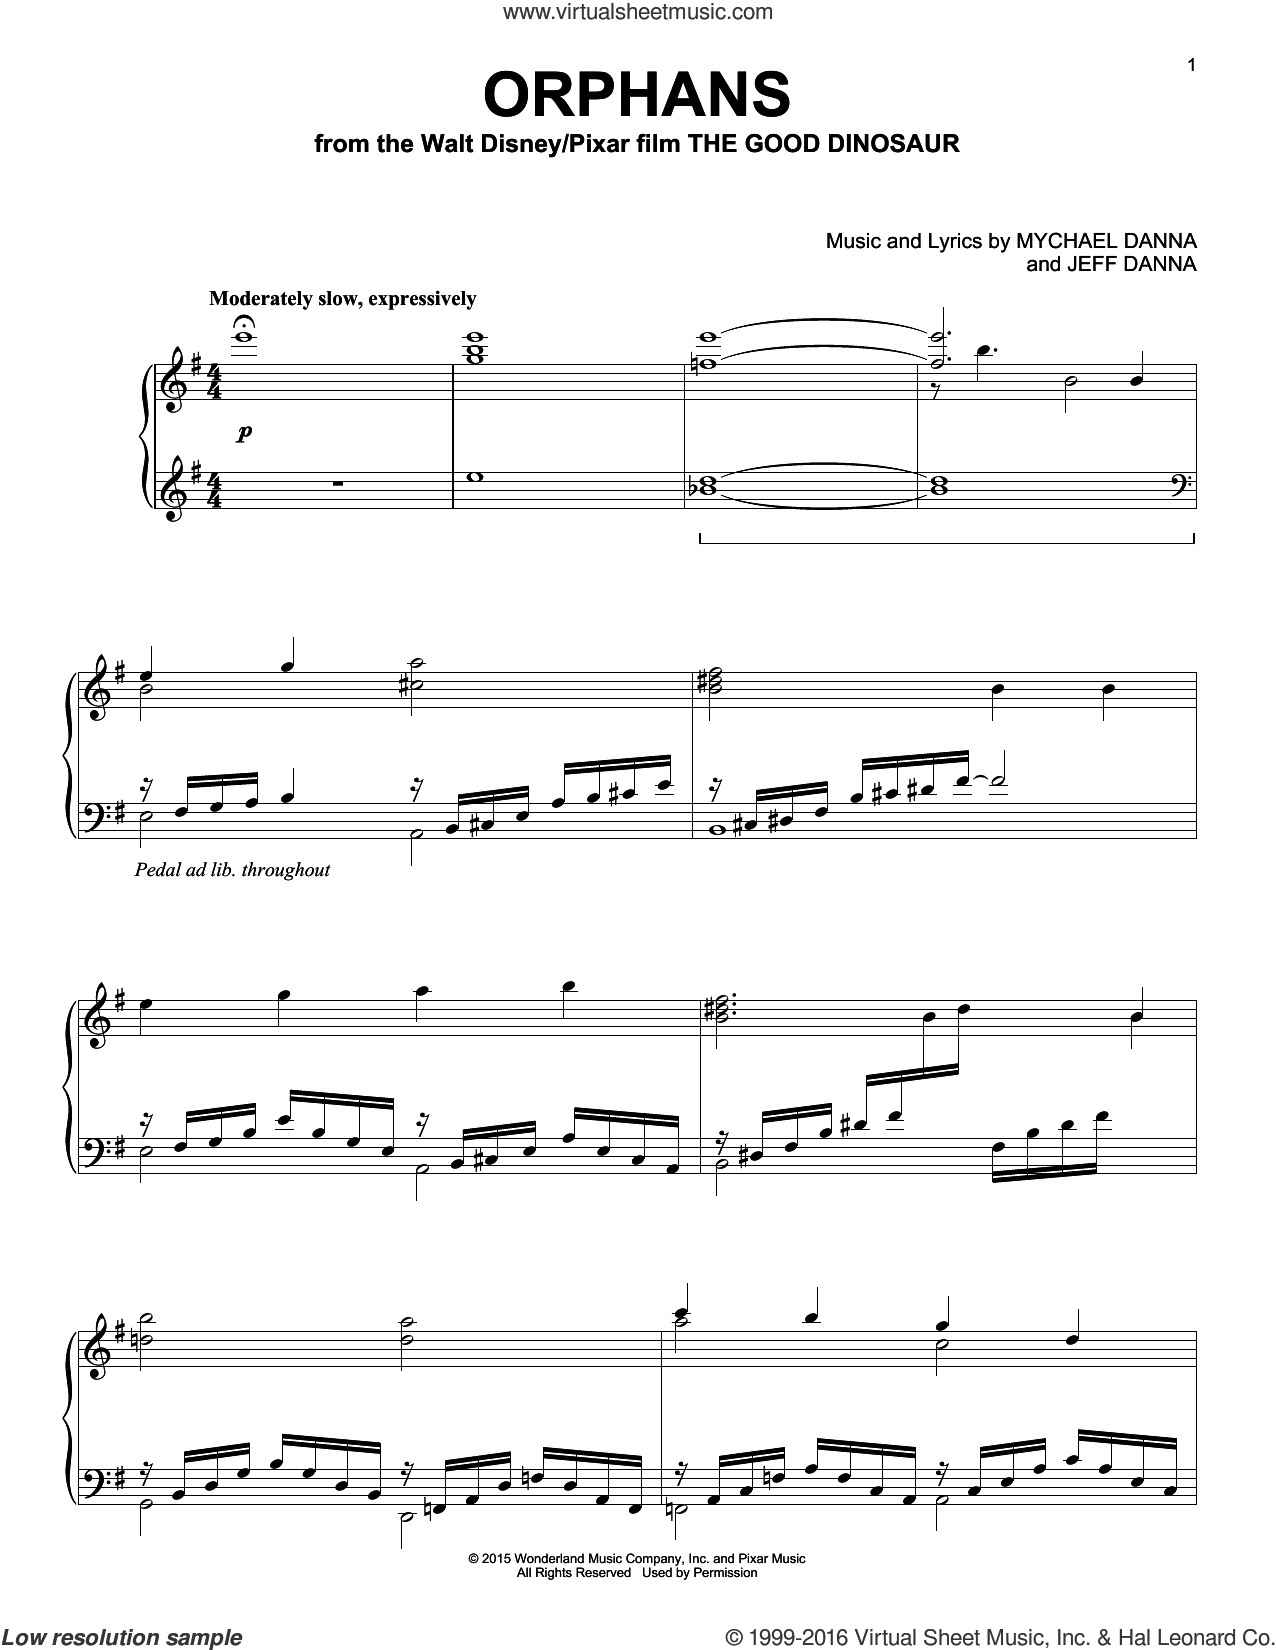 Orphans sheet music for piano solo by Mychael & Jeff Danna, Jeff Danna and Mychael Danna, intermediate skill level